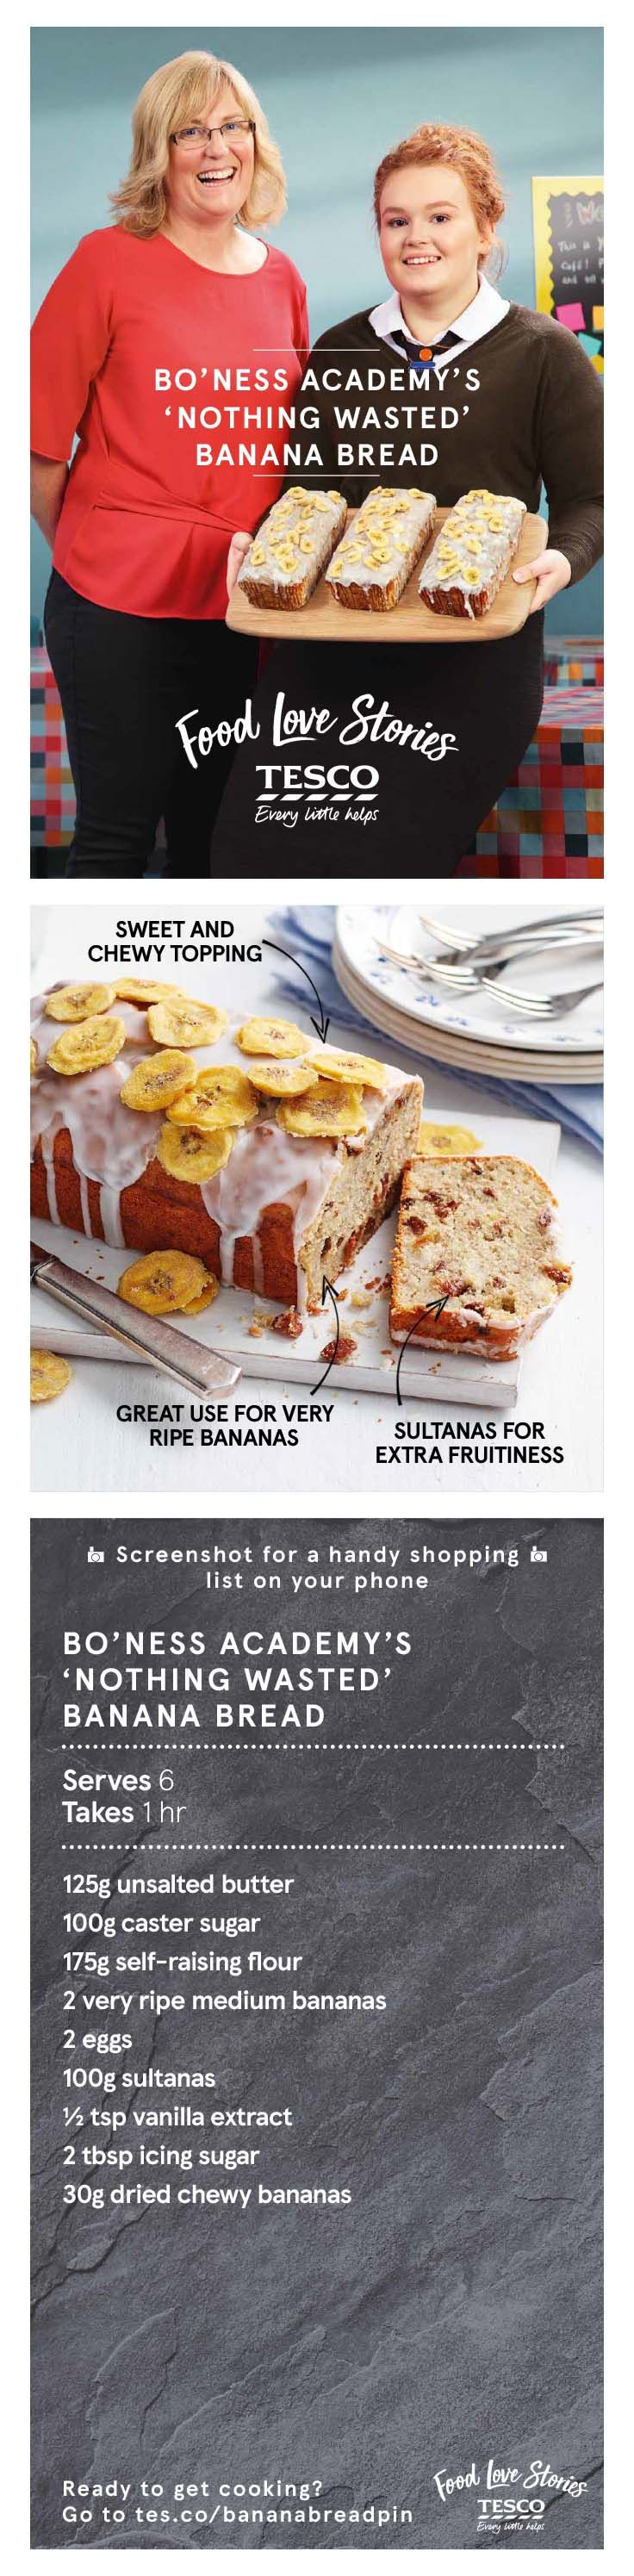 This banana bread recipe is so easy to make and is great for cooking with kids. Add some icing and a sprinkling of banana chips just like the pupils of Bo'ness Academy from our Food Love Story.   Tesco